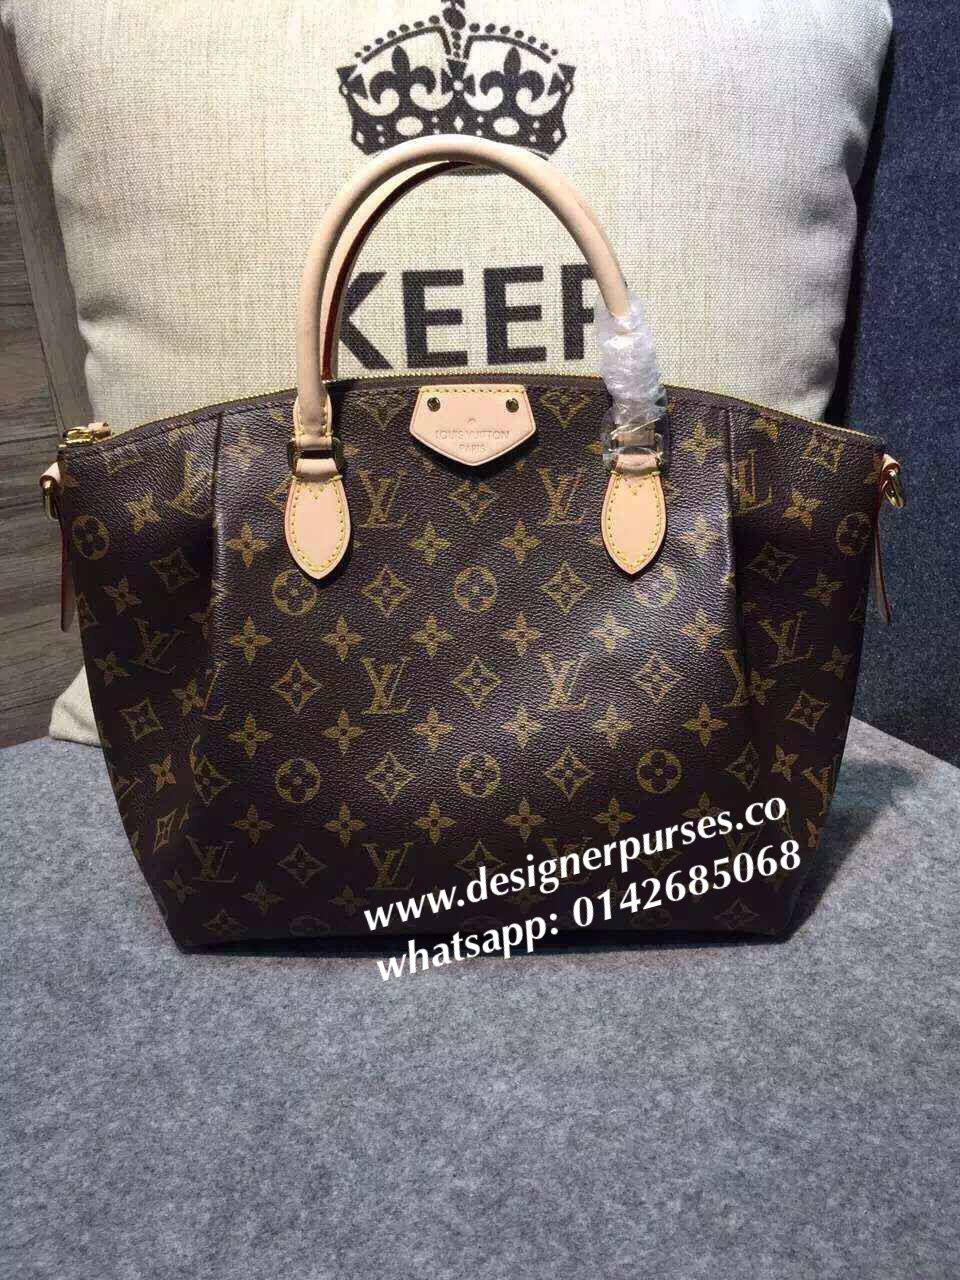 Louis Vuitton Turenne mm. Just get it this lovely purse ever. Comes in pm c4c9e10d7a779